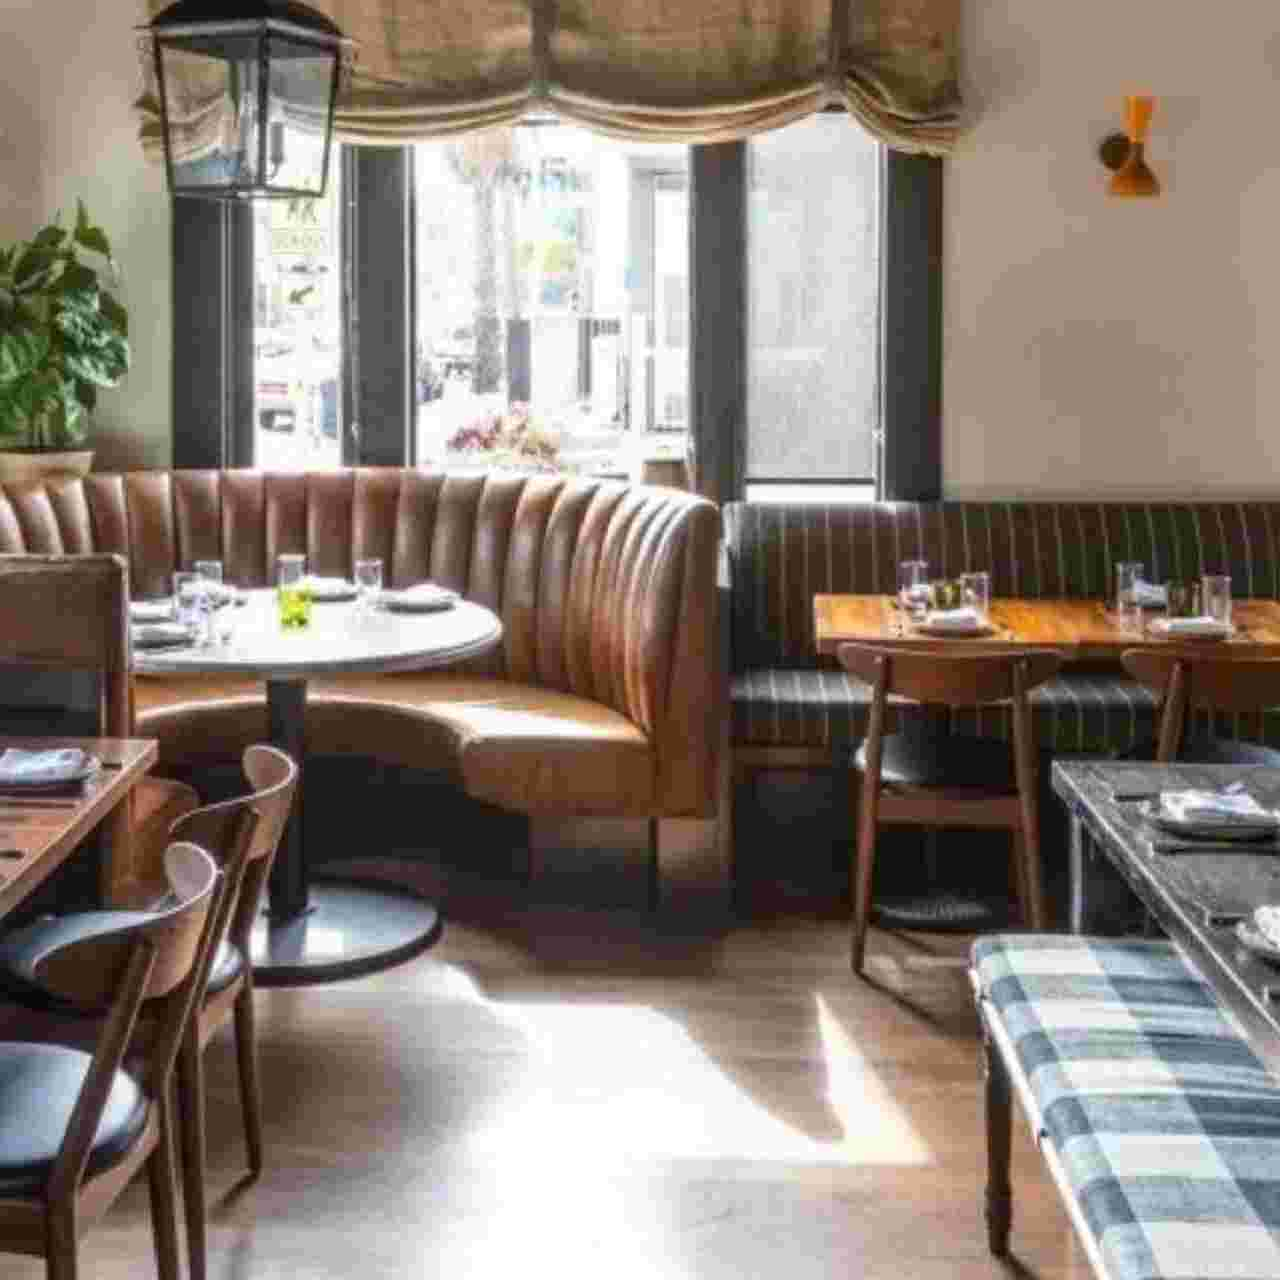 Great Restaurants For A Last-Minute Date Night